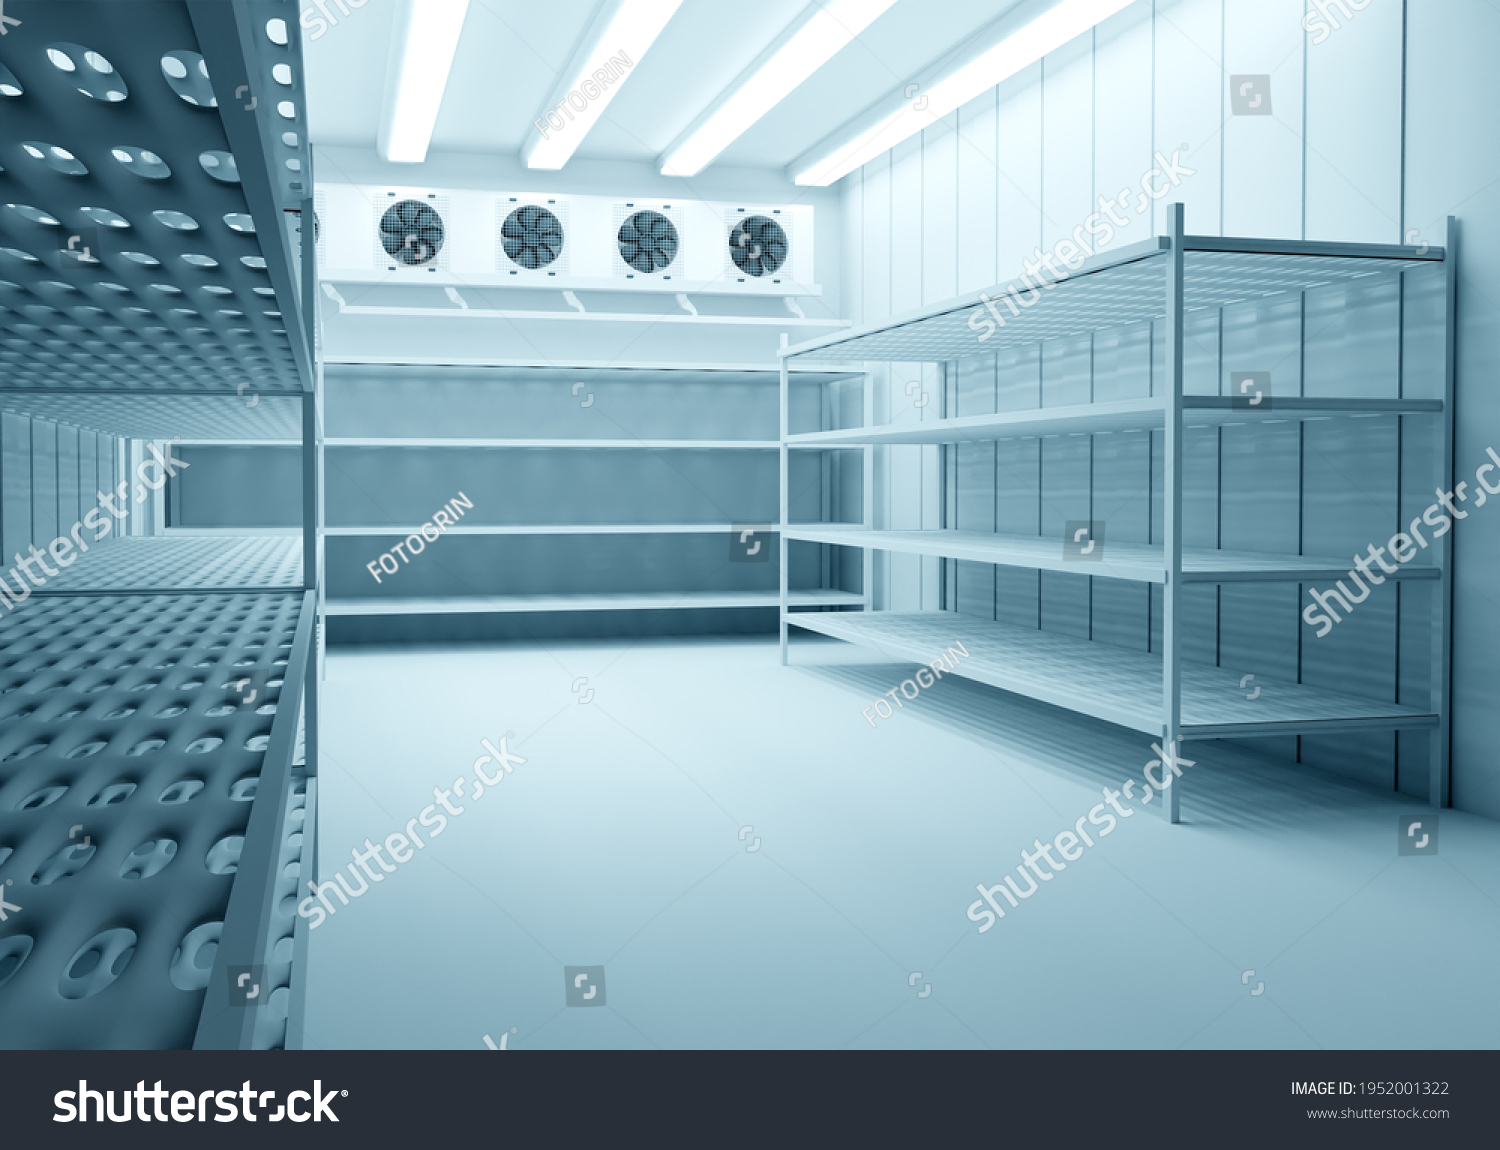 Refrigeration Chamber for Food Storage. Metal Shelves and Racks for String Frozen Foods. Food Freezing Shop. Selective Storage System. Cold Warehouse. Air conditioning on a warehouse wall. #1952001322